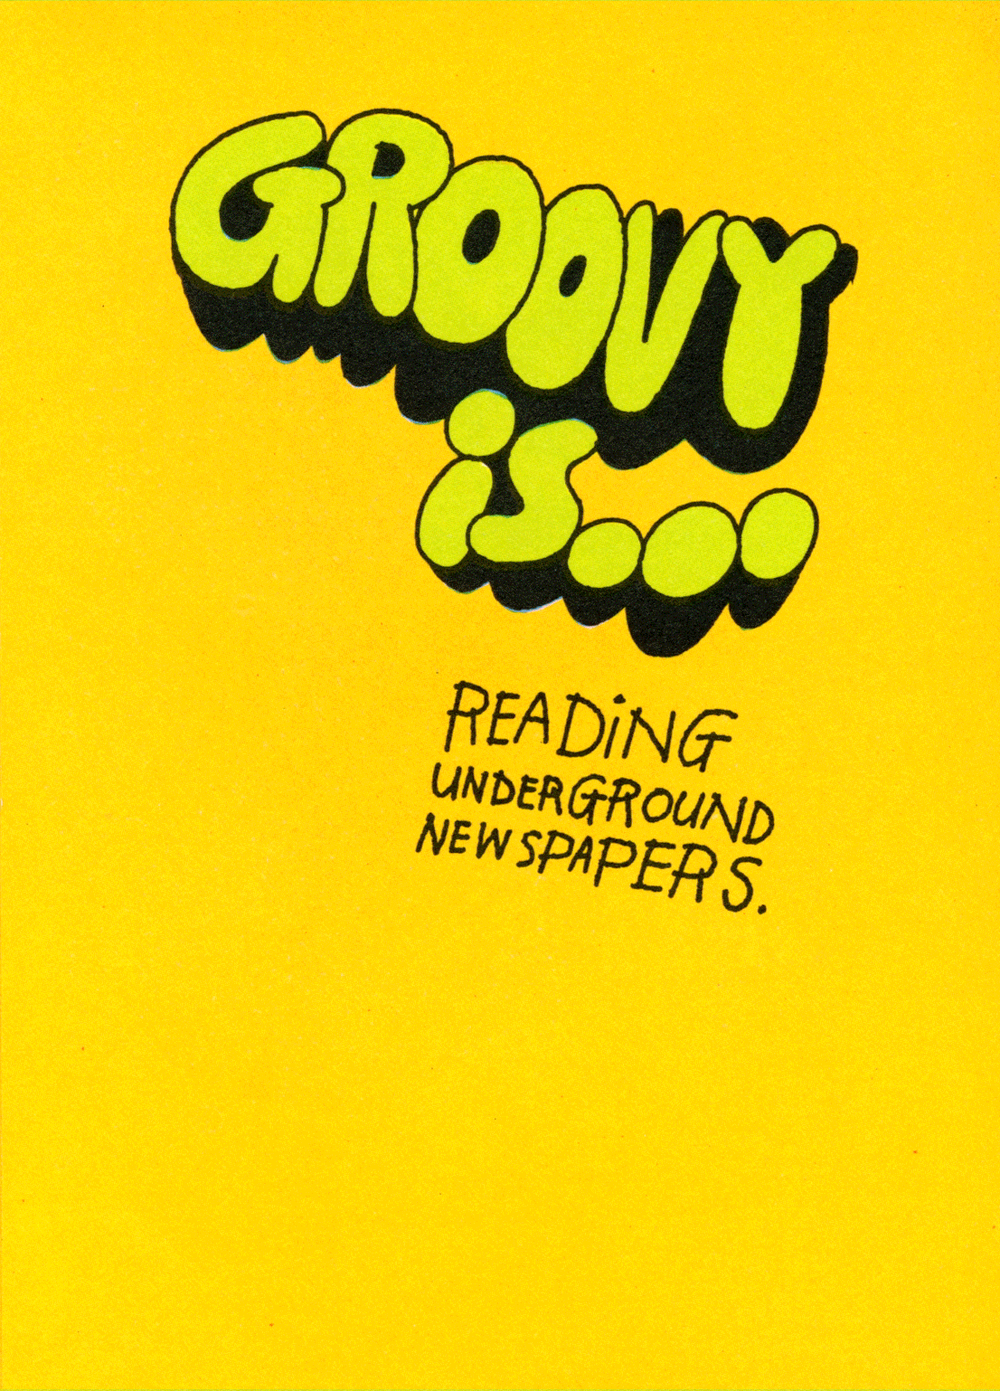 groovy-is_2.png